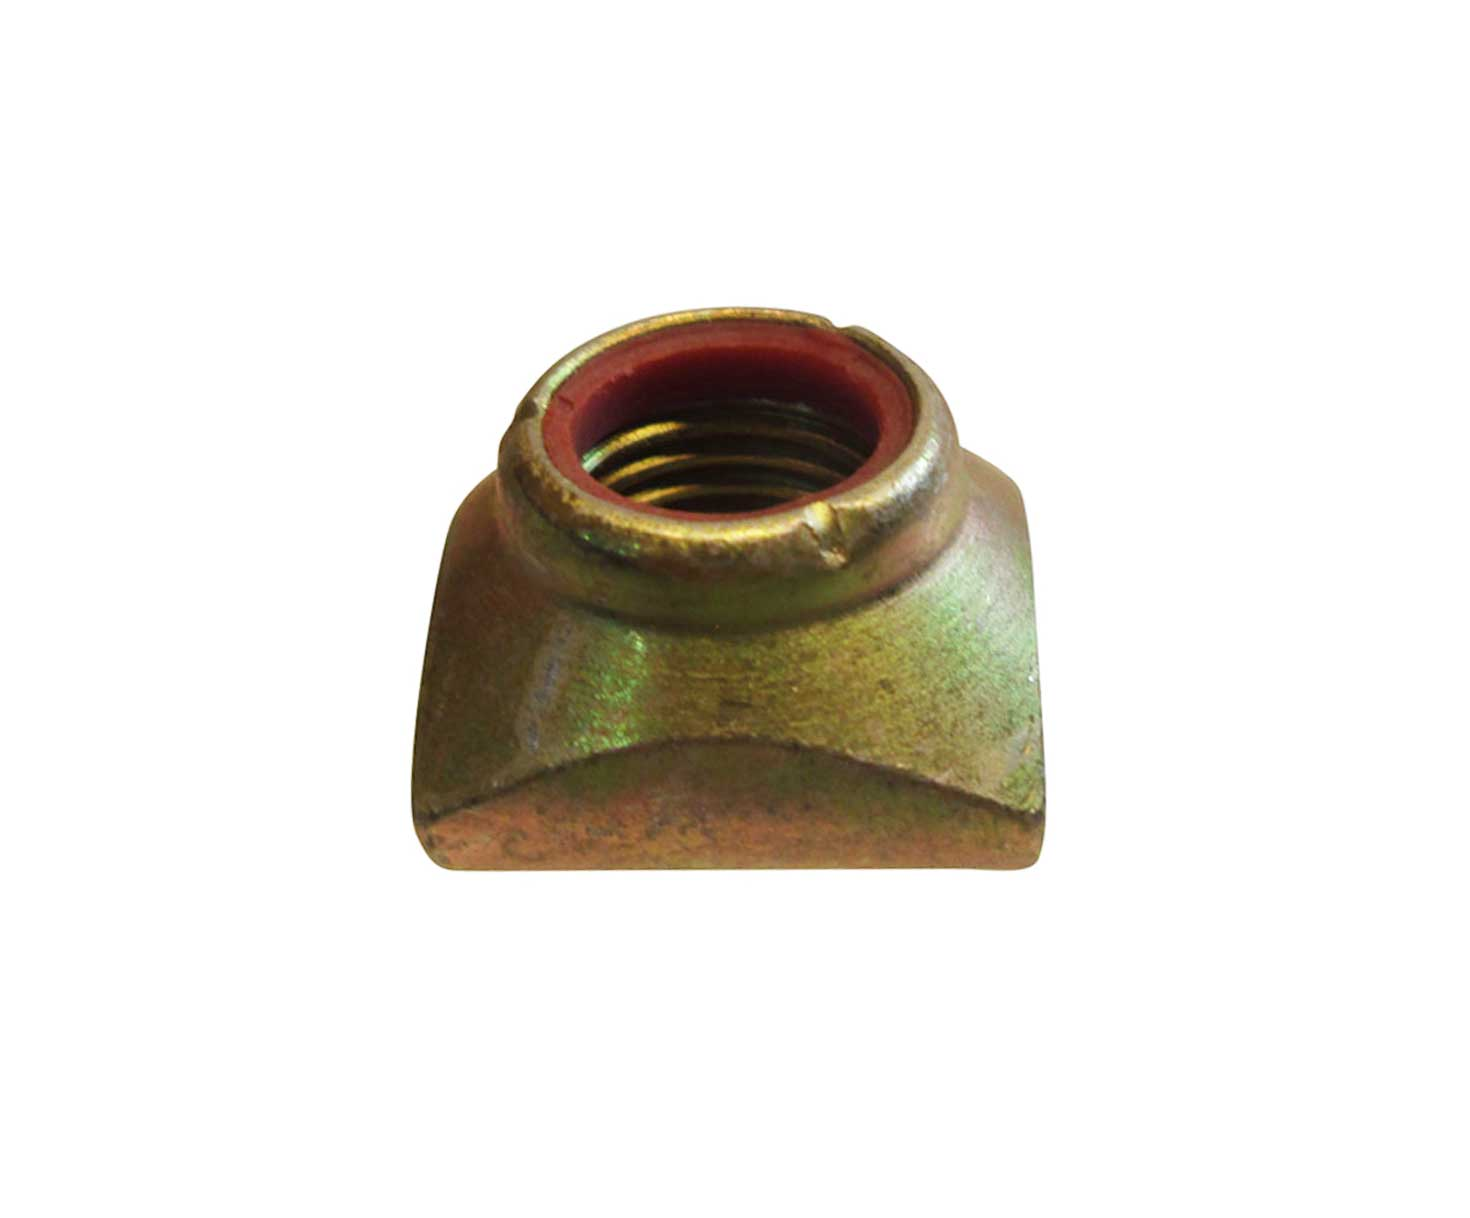 Brass Nut Plyisty Wear Resistant Embedded Nut 170pcs Nut High Hardness for Industry Corresponding Screws Home